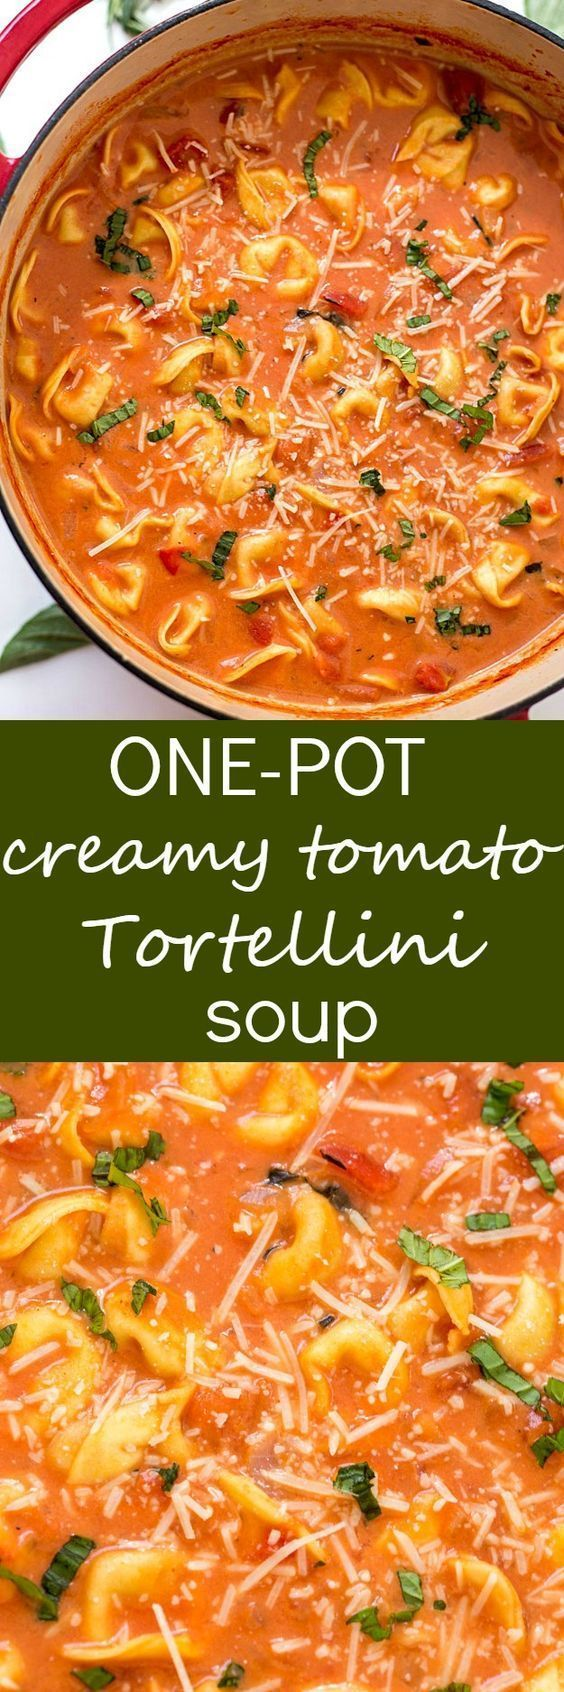 1 Basil, fresh. 3 Garlic cloves. 1 Onion diced or 1 cup, medium. 1/2 tsp Oregano, dried. 1 28 ounce can Tomatoes. 4 cups Chicken stock. 1 15 ounce can Tomato sauce. 20 oz Three cheese tortellini. 1/4 tsp Pepper. 1/2 tsp Salt. 1 Salt and pepper. 1 tsp Olive oil. 1/2 cup Heavy cream. 1/2 cup Parmesan cheese. 1 Parmesan cheese. 4 Large fresh basil leaves or ½ teaspoon dried basil. 1 Spring of fresh rosemary chopped or ½ teaspoon dried.